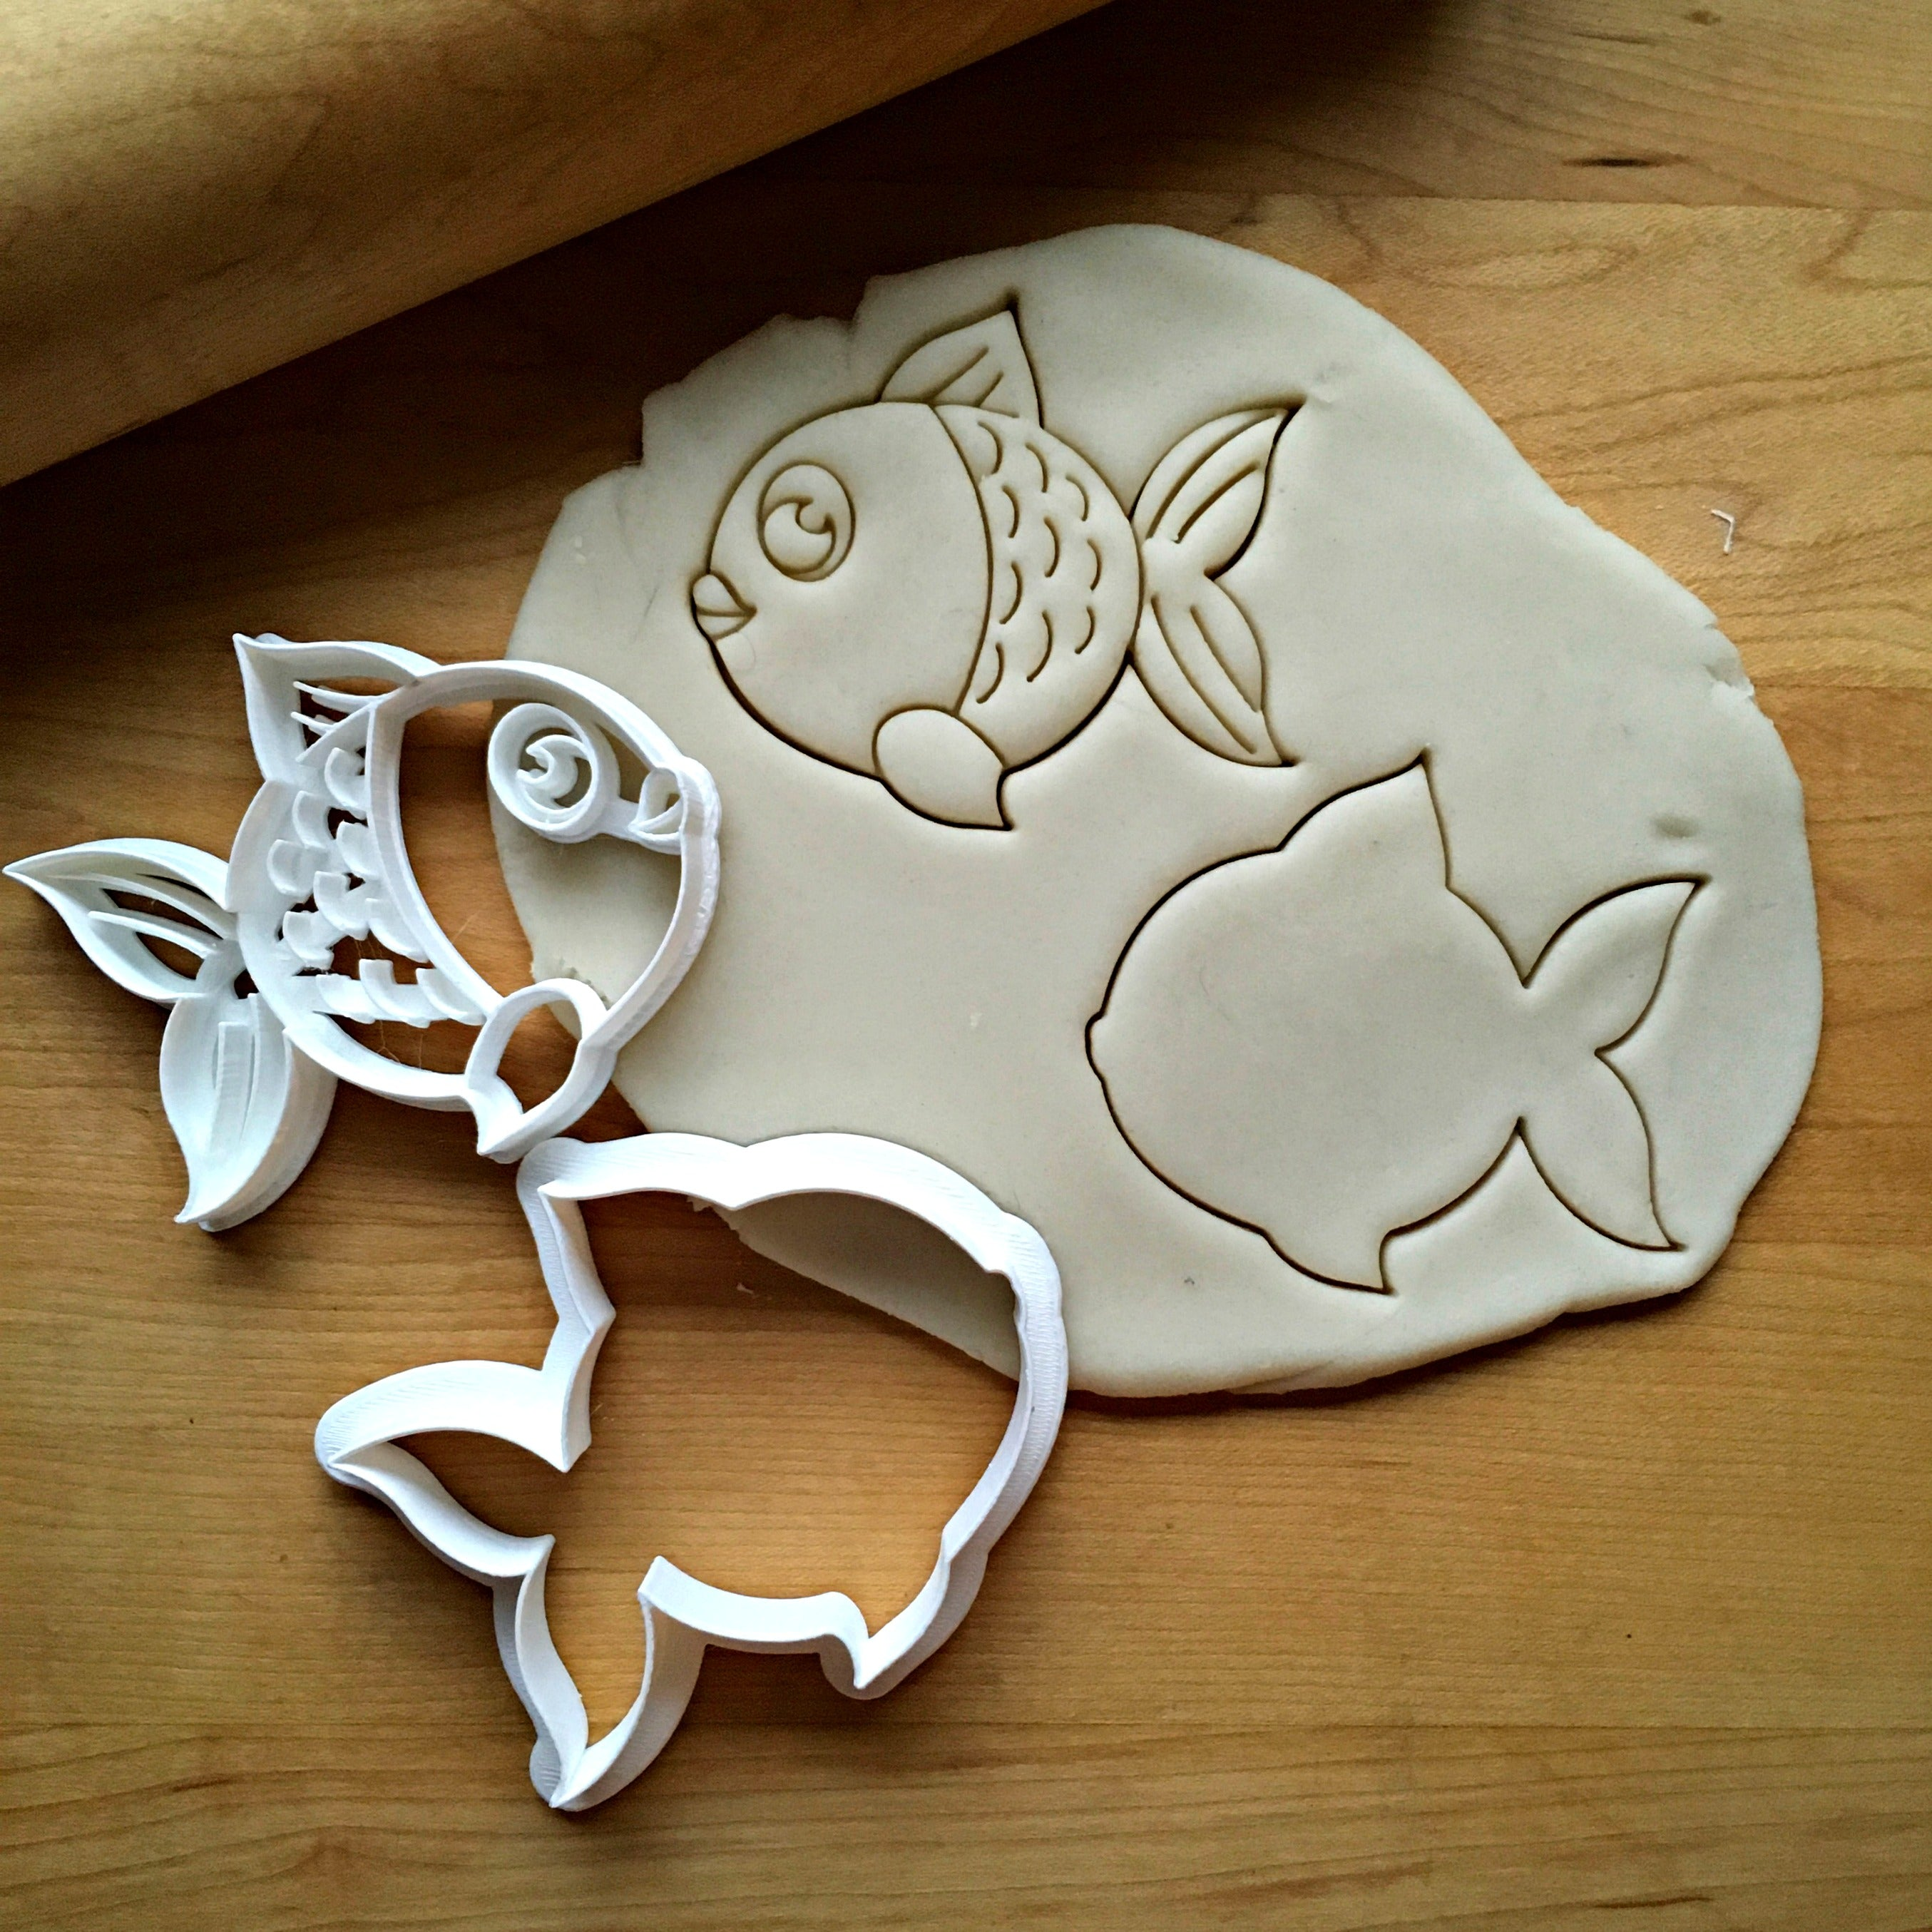 Set of 2 Fish Cookie Cutters/Dishwasher Safe